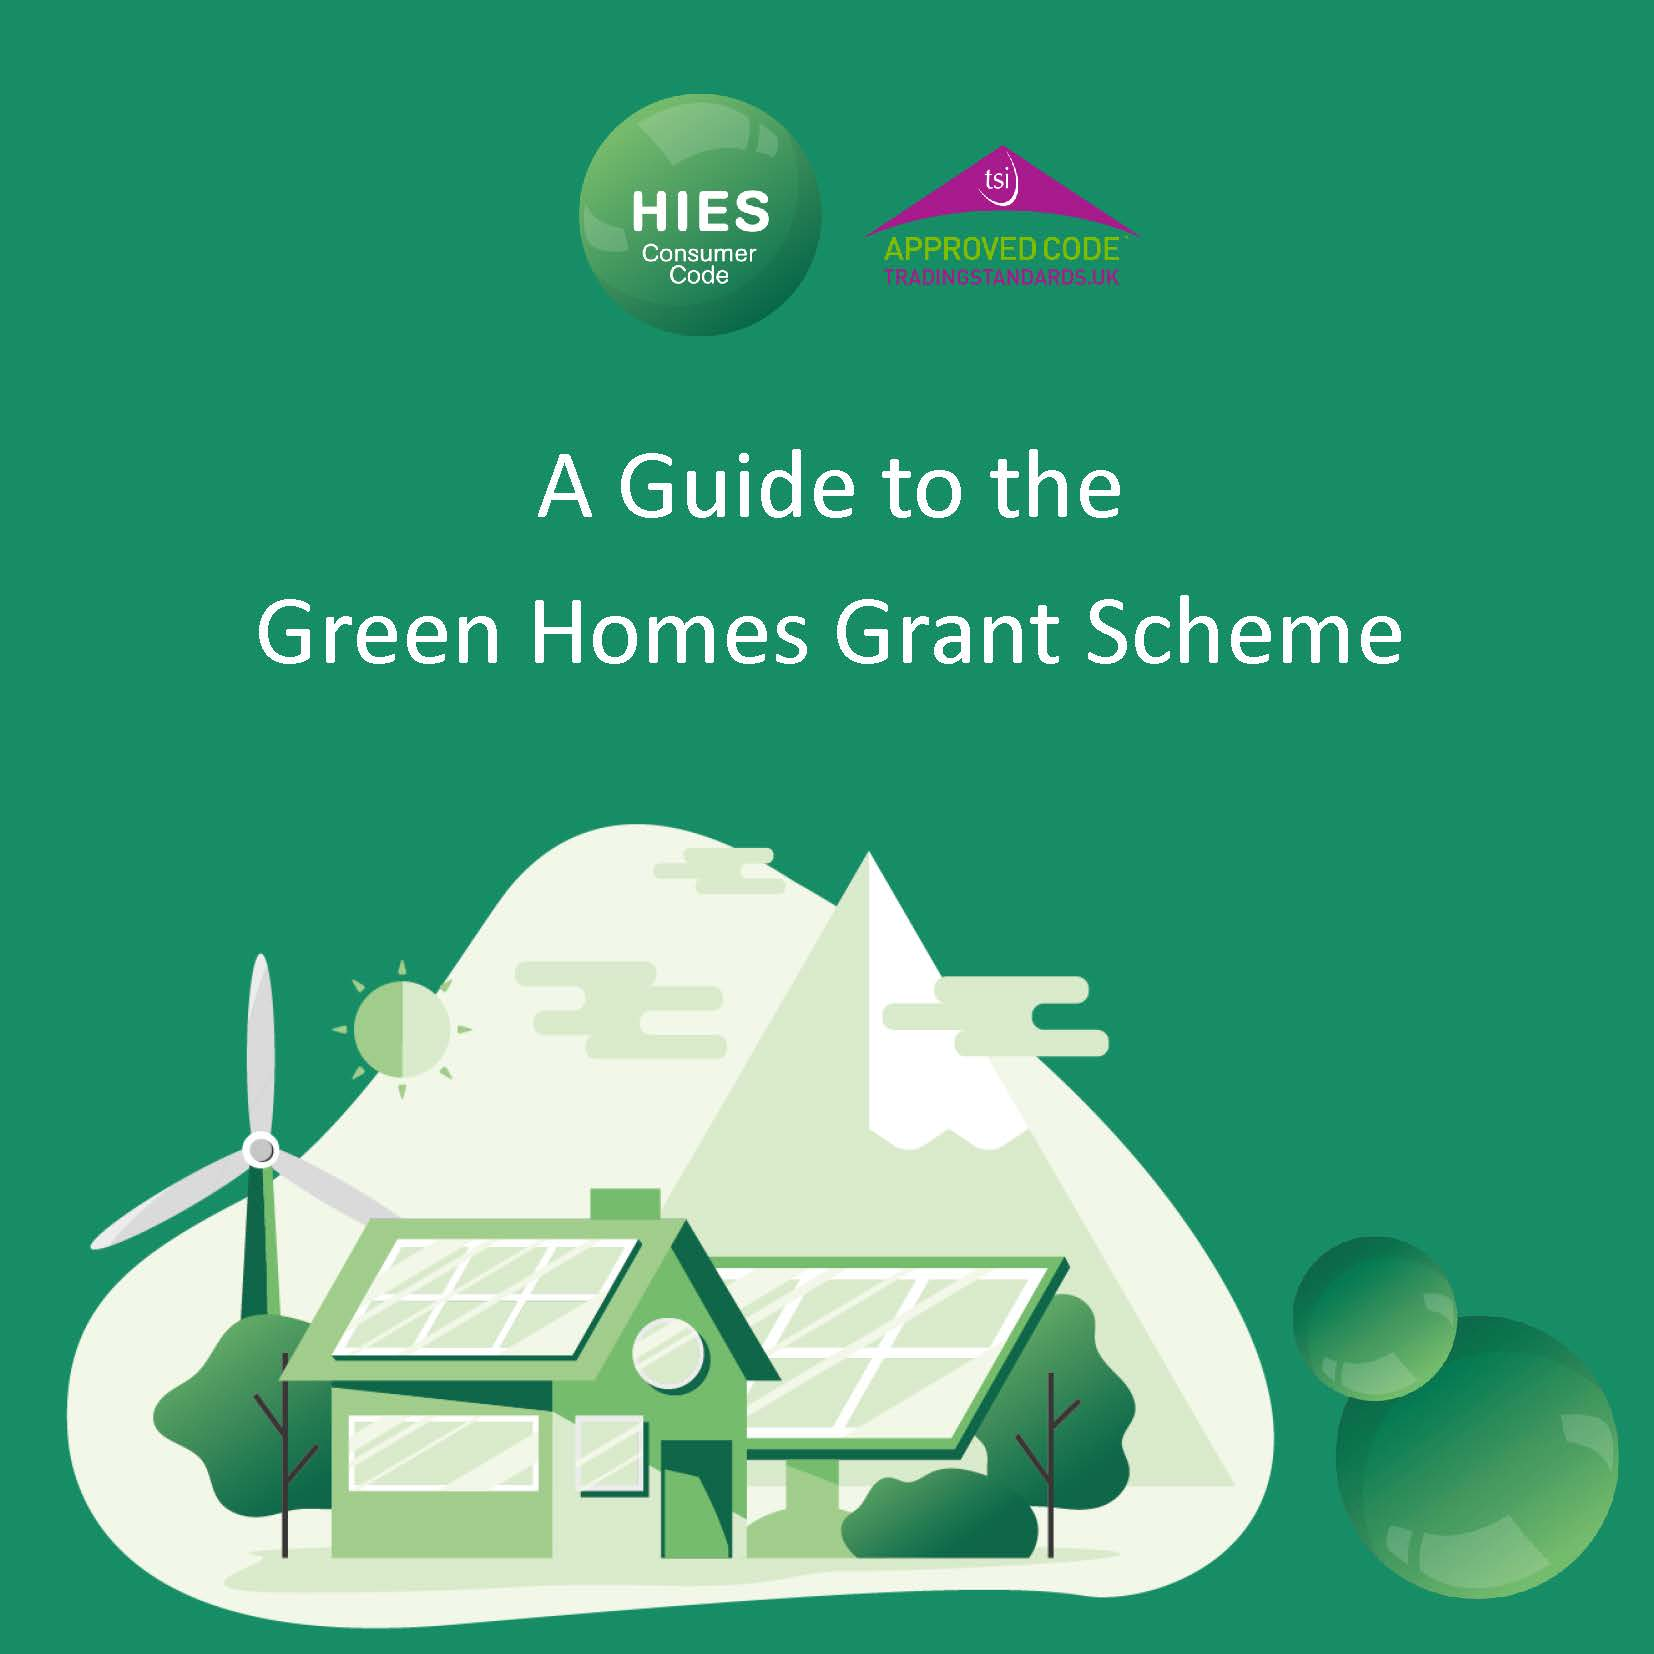 A Guide to the Green Homes Grant Scheme